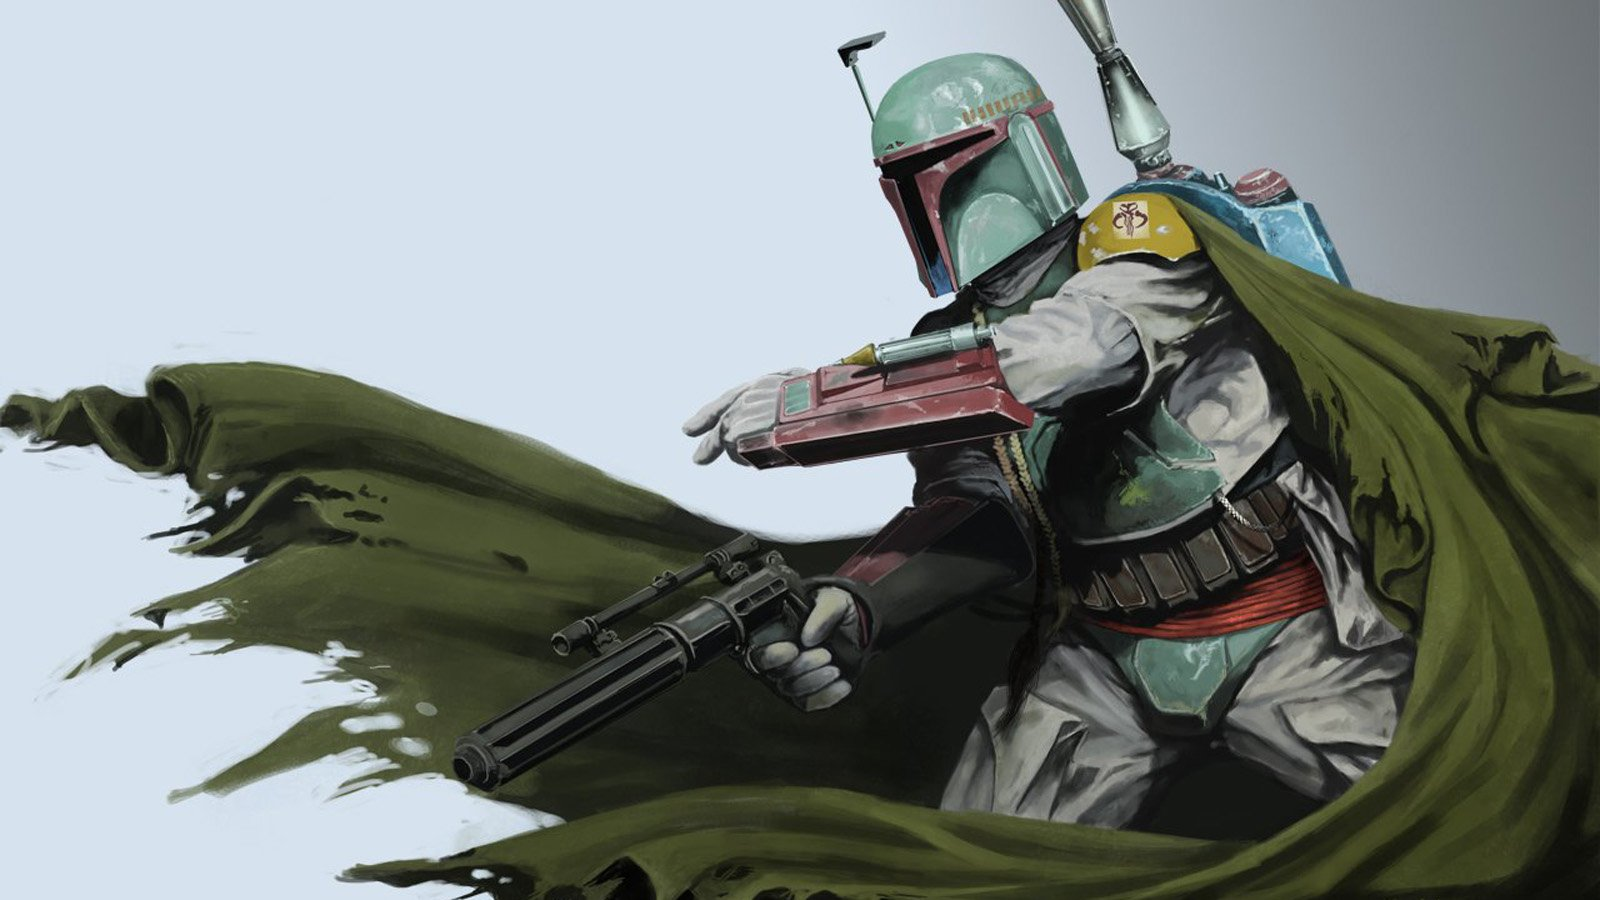 Star Wars Wallpaper Boba Fett